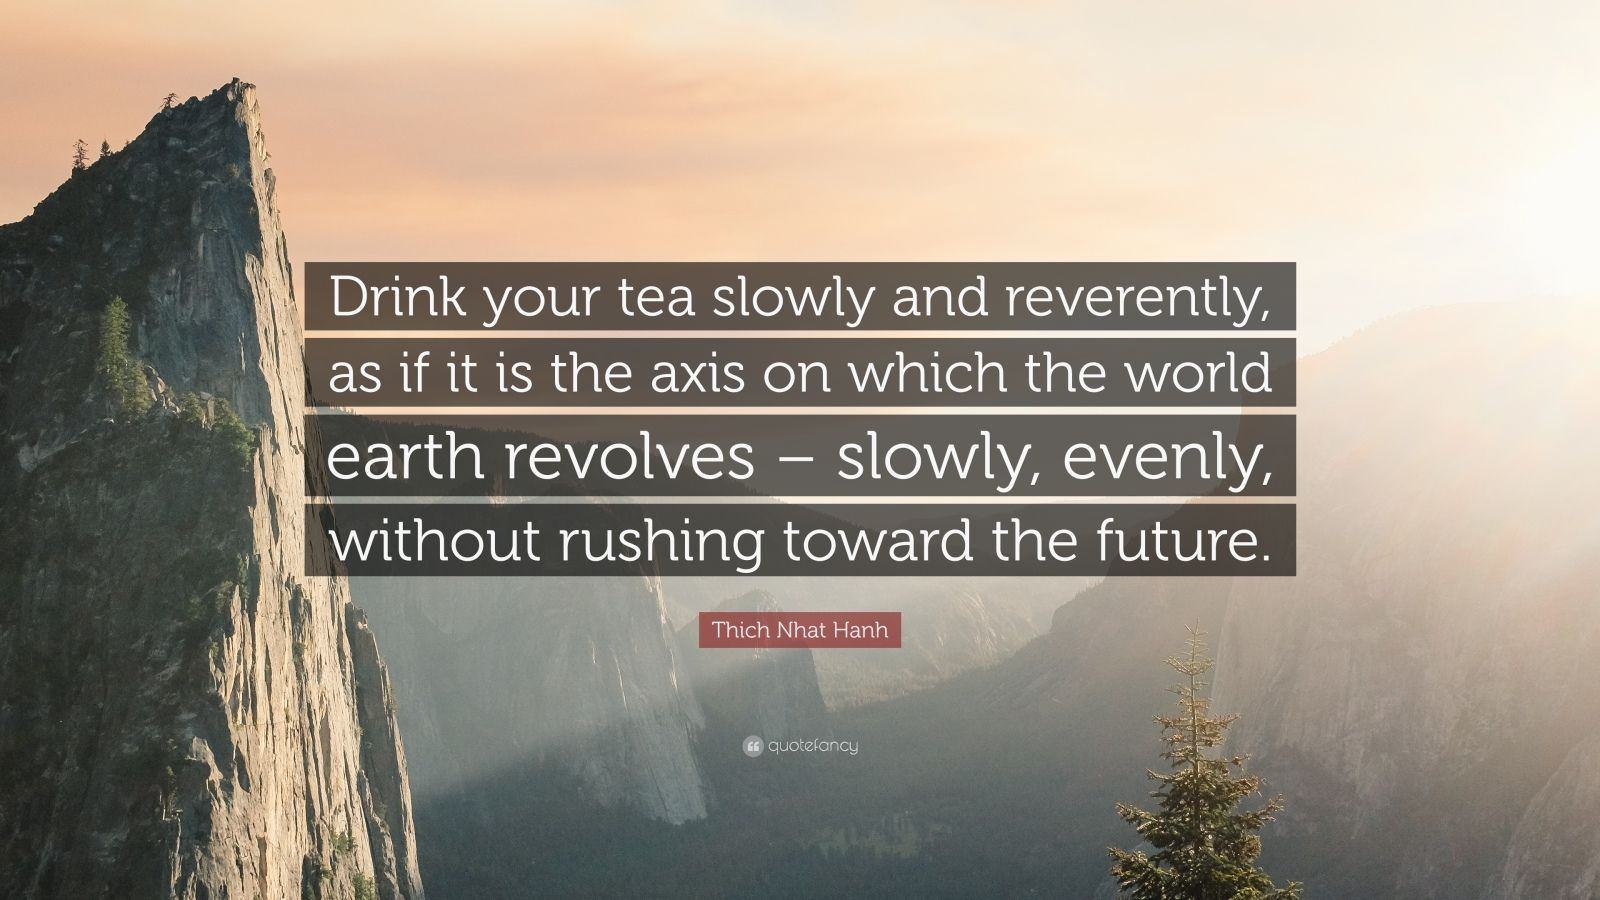 """Thich Nhat Hanh Quote: """"Drink your tea slowly and reverently, as if it is the axis on which the world earth revolves – slowly, evenly, without rushing toward the future."""""""